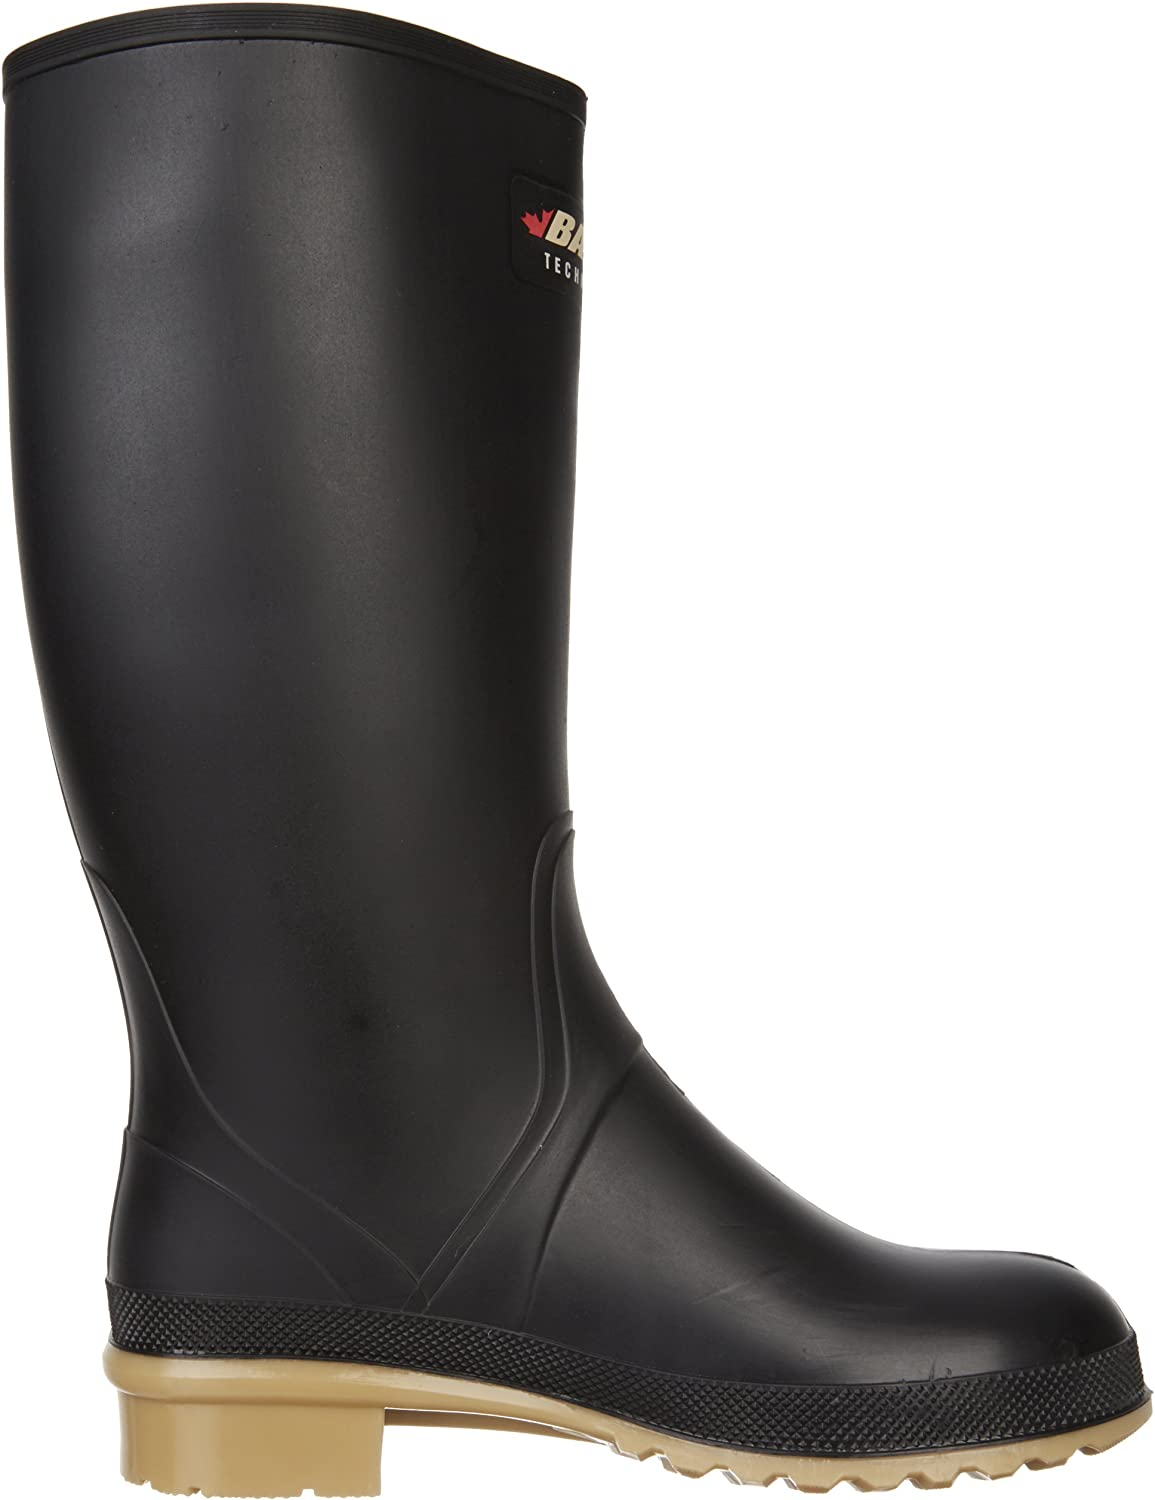 Baffin Prime – Women's All Season, Oil and Acid-Resistant Rubber Boot